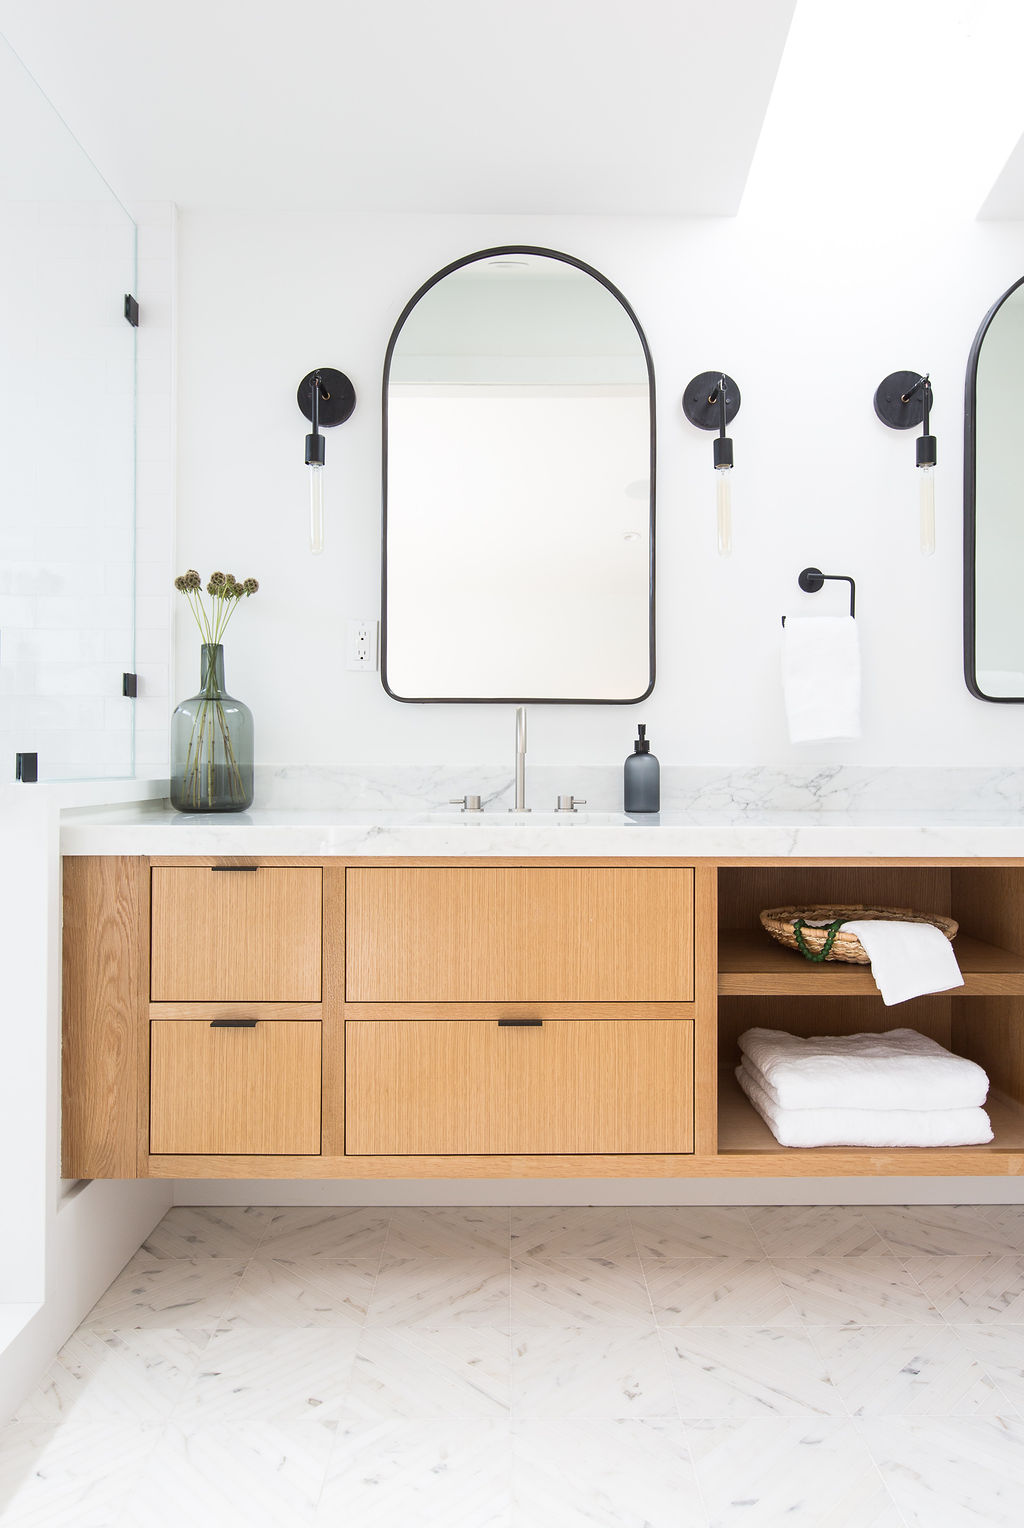 Love & Interiors_San Francisco_Pac Heights_Warm Modern_Master Bath_Oak Vanity_Wall Sconces_Black Accents_Mosaic Floor.jpg